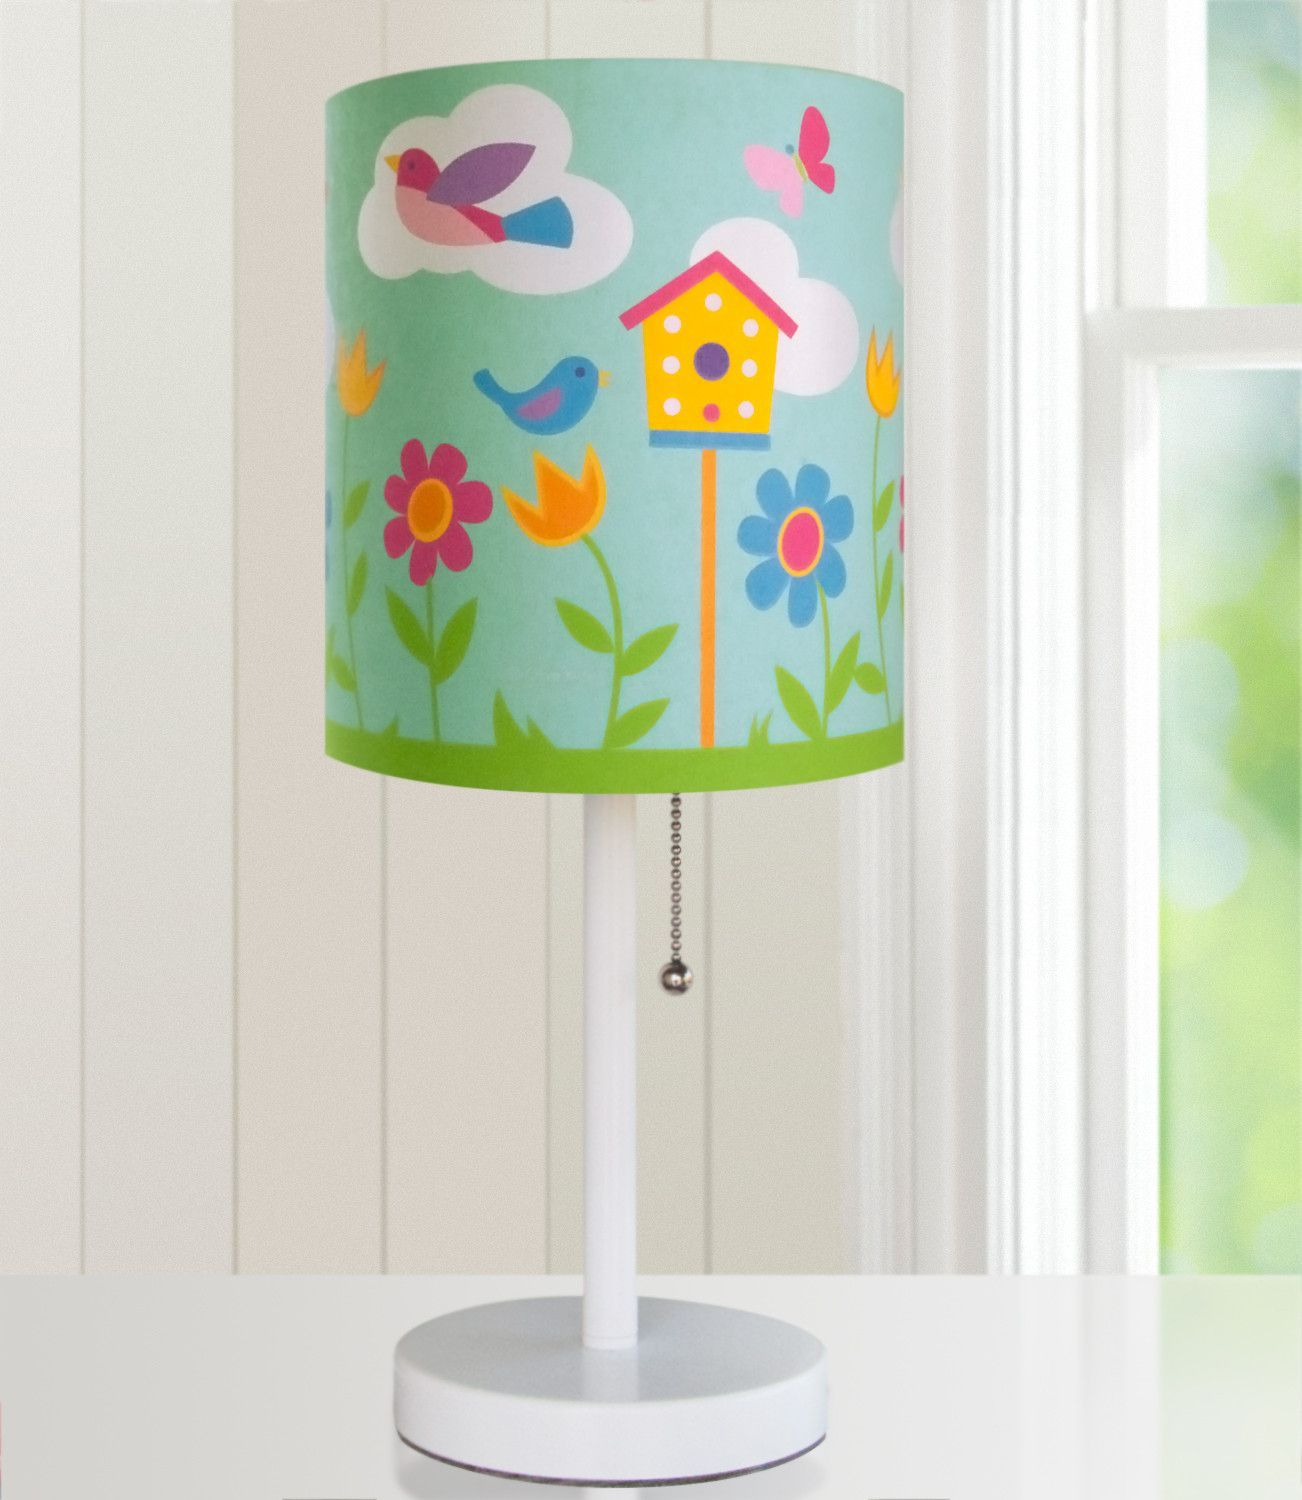 Olive Kids Birdie Cylinder Lamp - 631413 $50 Brighten up your child's room with an Olive Kids lamp! Our wooden based, steel stemmed lamps are topped with a printed fabric lamp shade. Each lamp coordinates wonderfully with our bedding and other room d